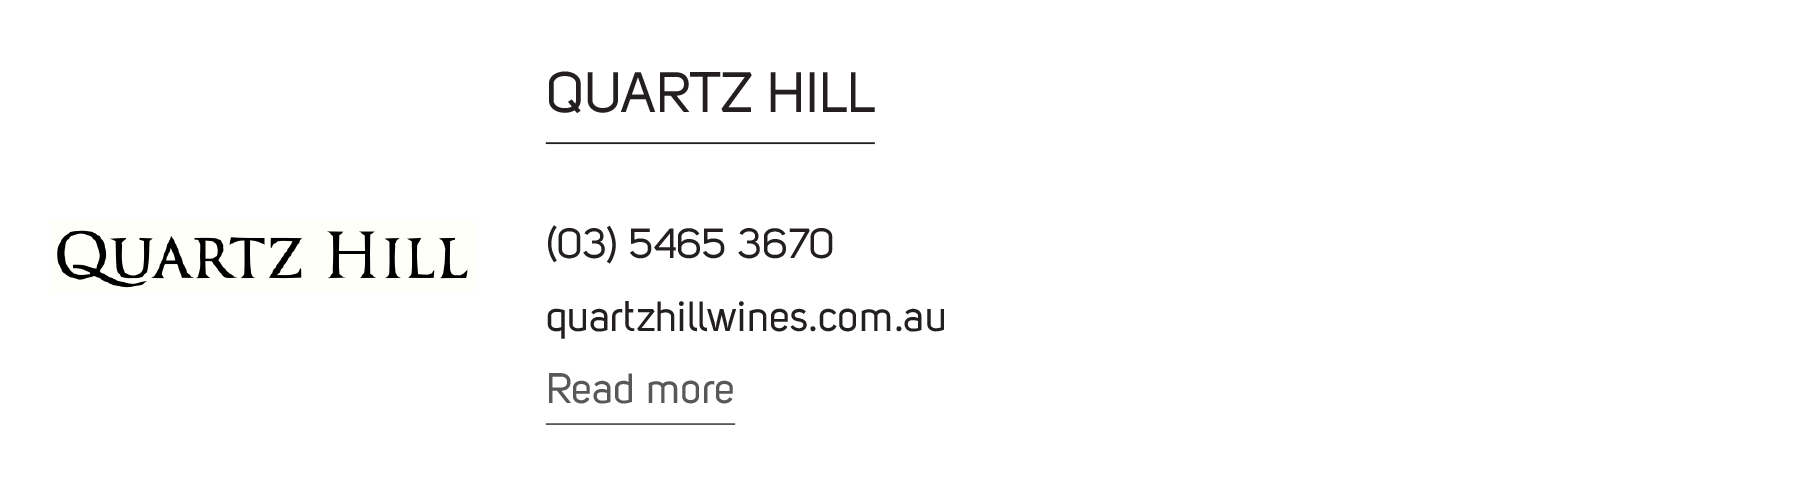 Quartz Hill Wine